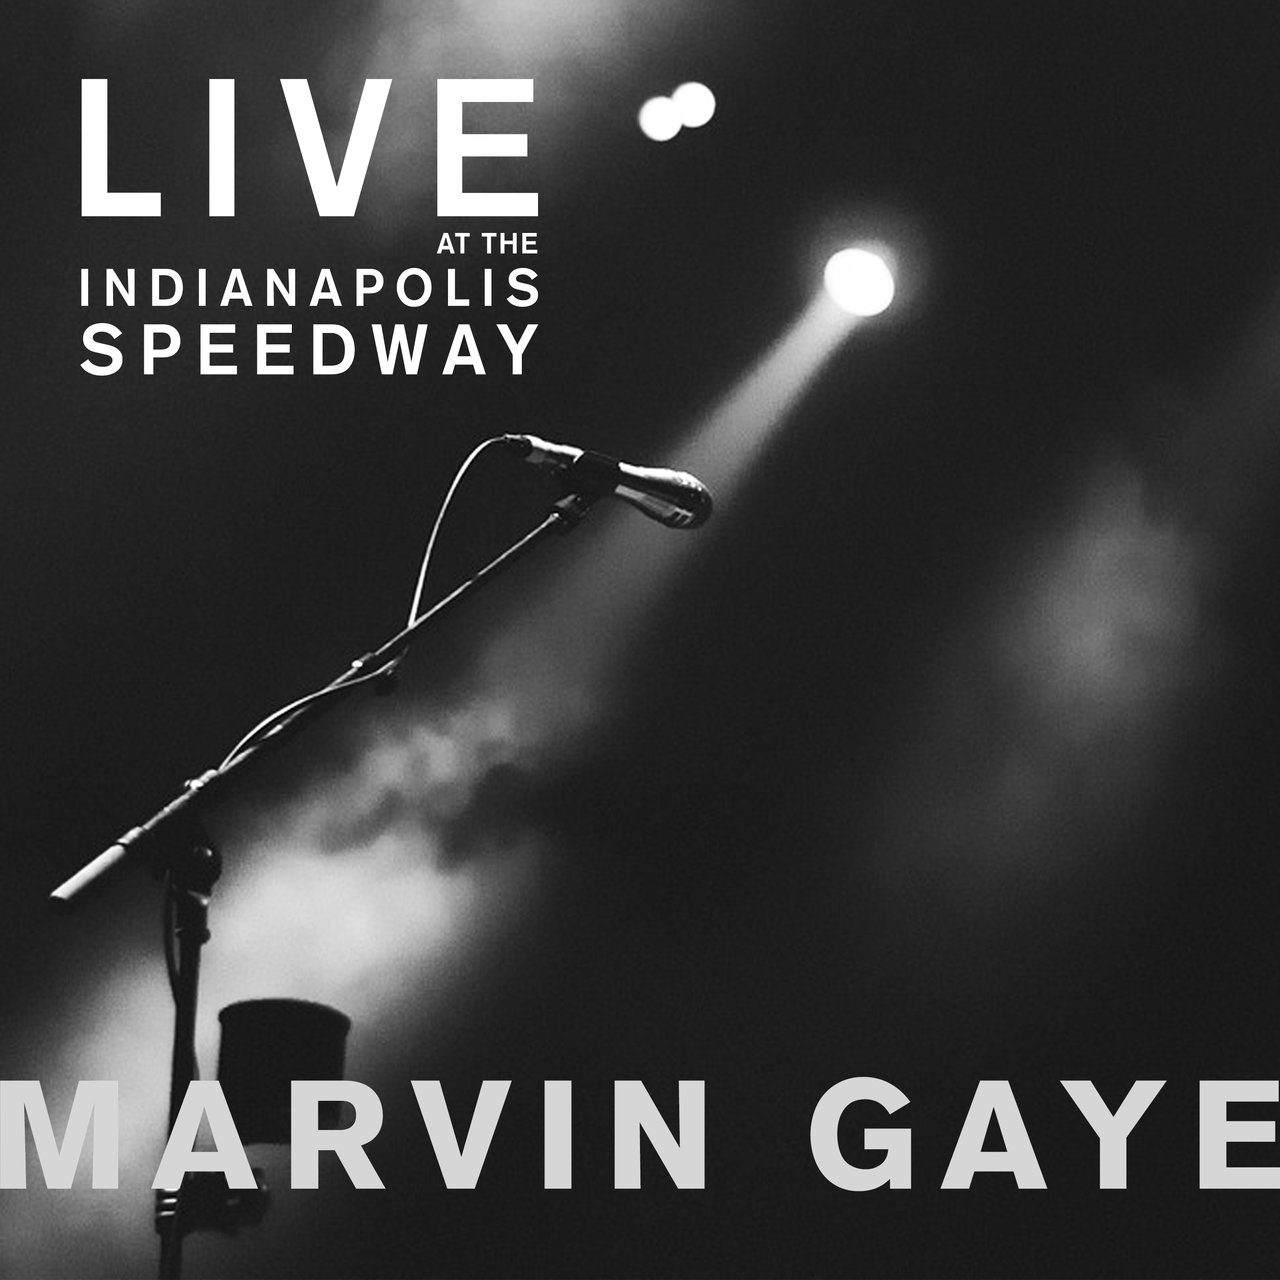 Marvin Gaye - Live at the Indianapolis Speedway